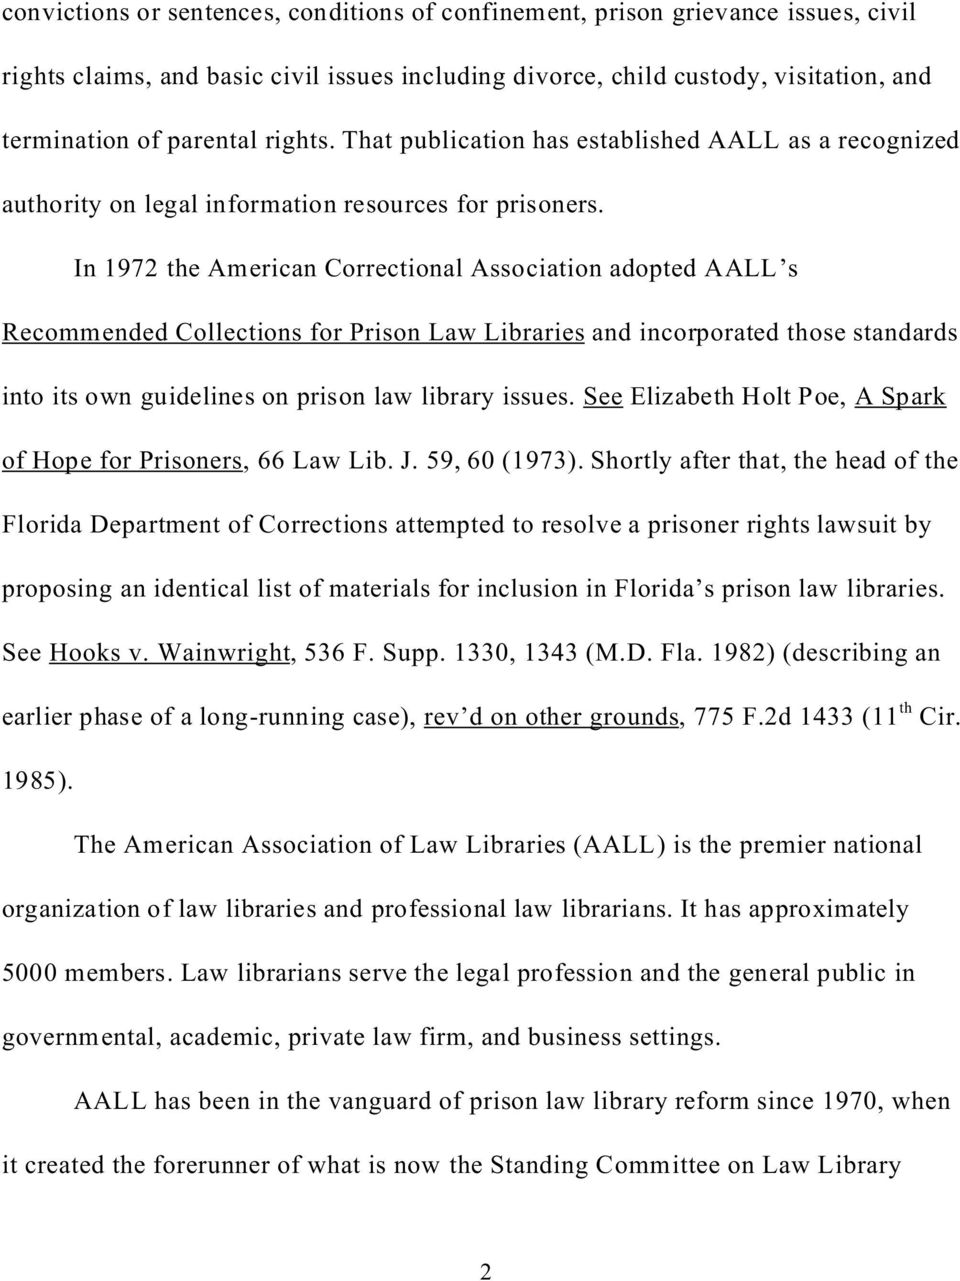 In 1972 the American Correctional Association adopted AALL s Recommended Collections for Prison Law Libraries and incorporated those standards into its own guidelines on prison law library issues.